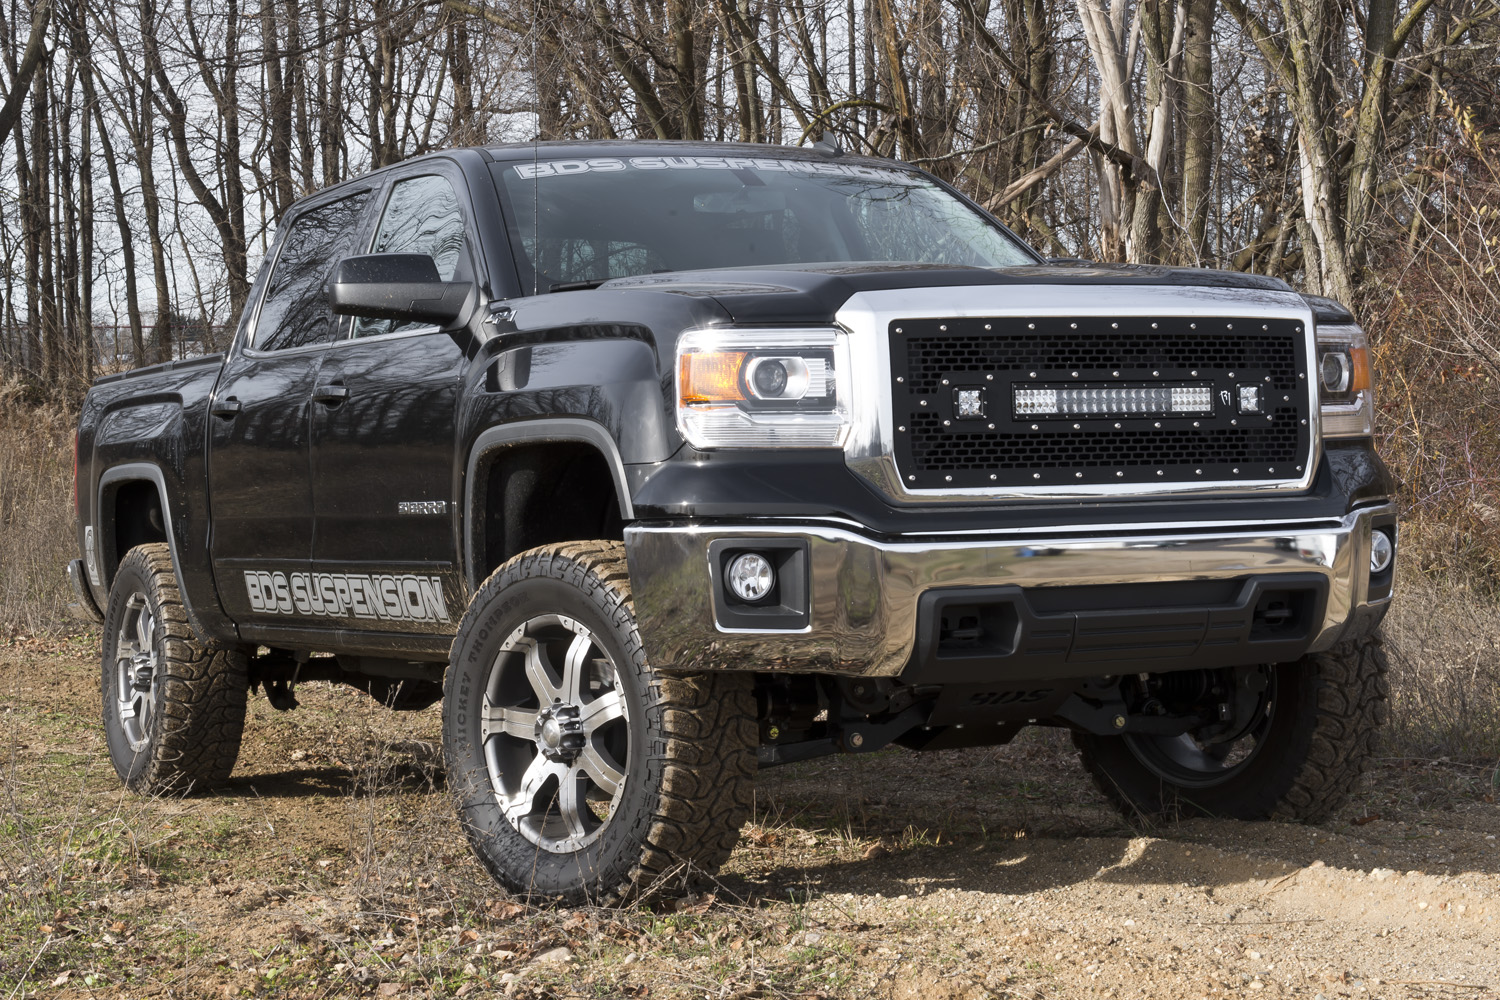 All Chevy 98 chevy lift kit : Press Release #152: 2014 Chevy/GMC 1500 4